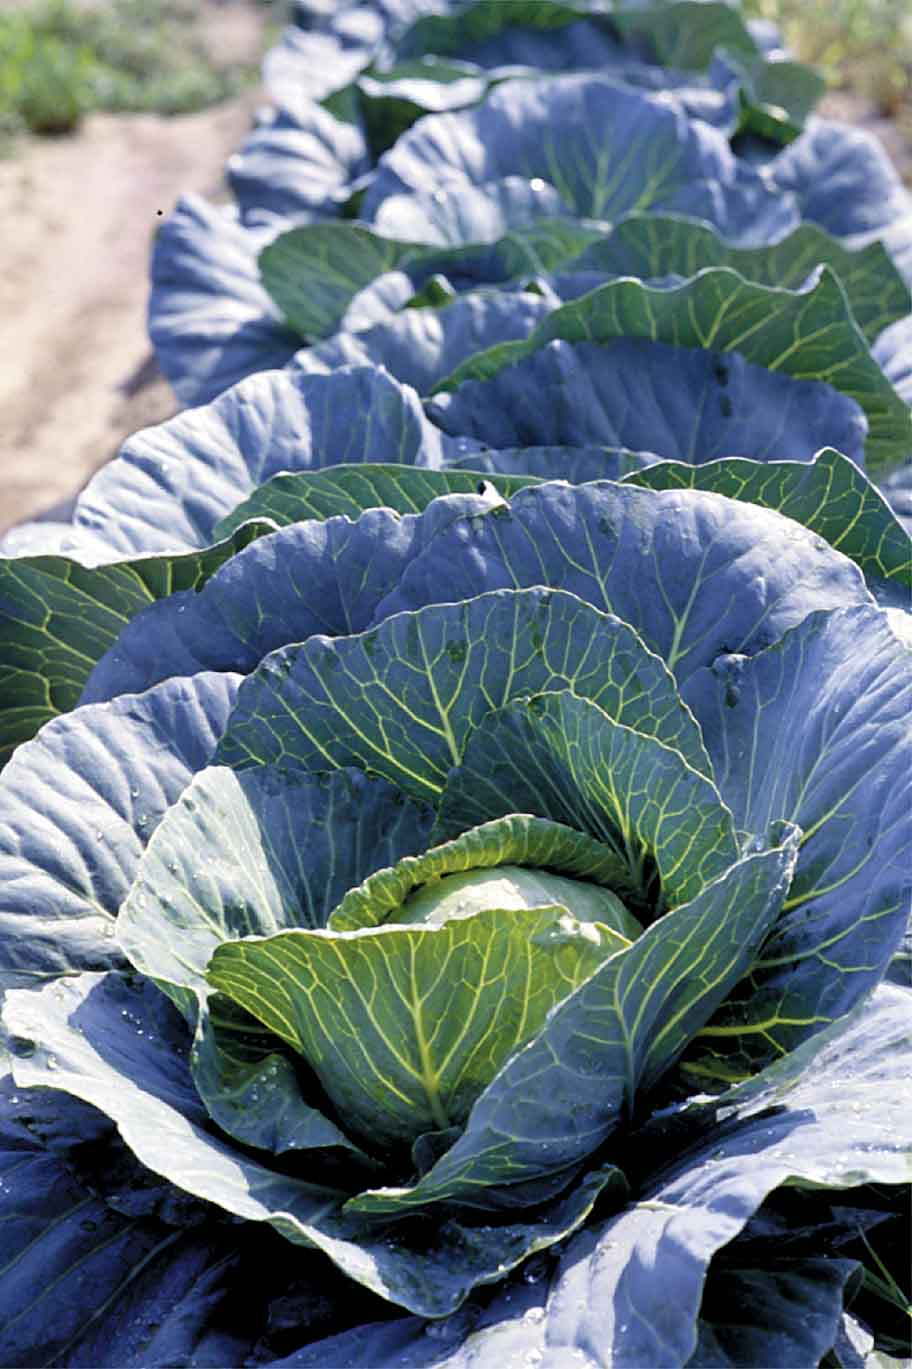 Recommended Rates of Trifluralin Affect Direct-seeded Cabbage Stands